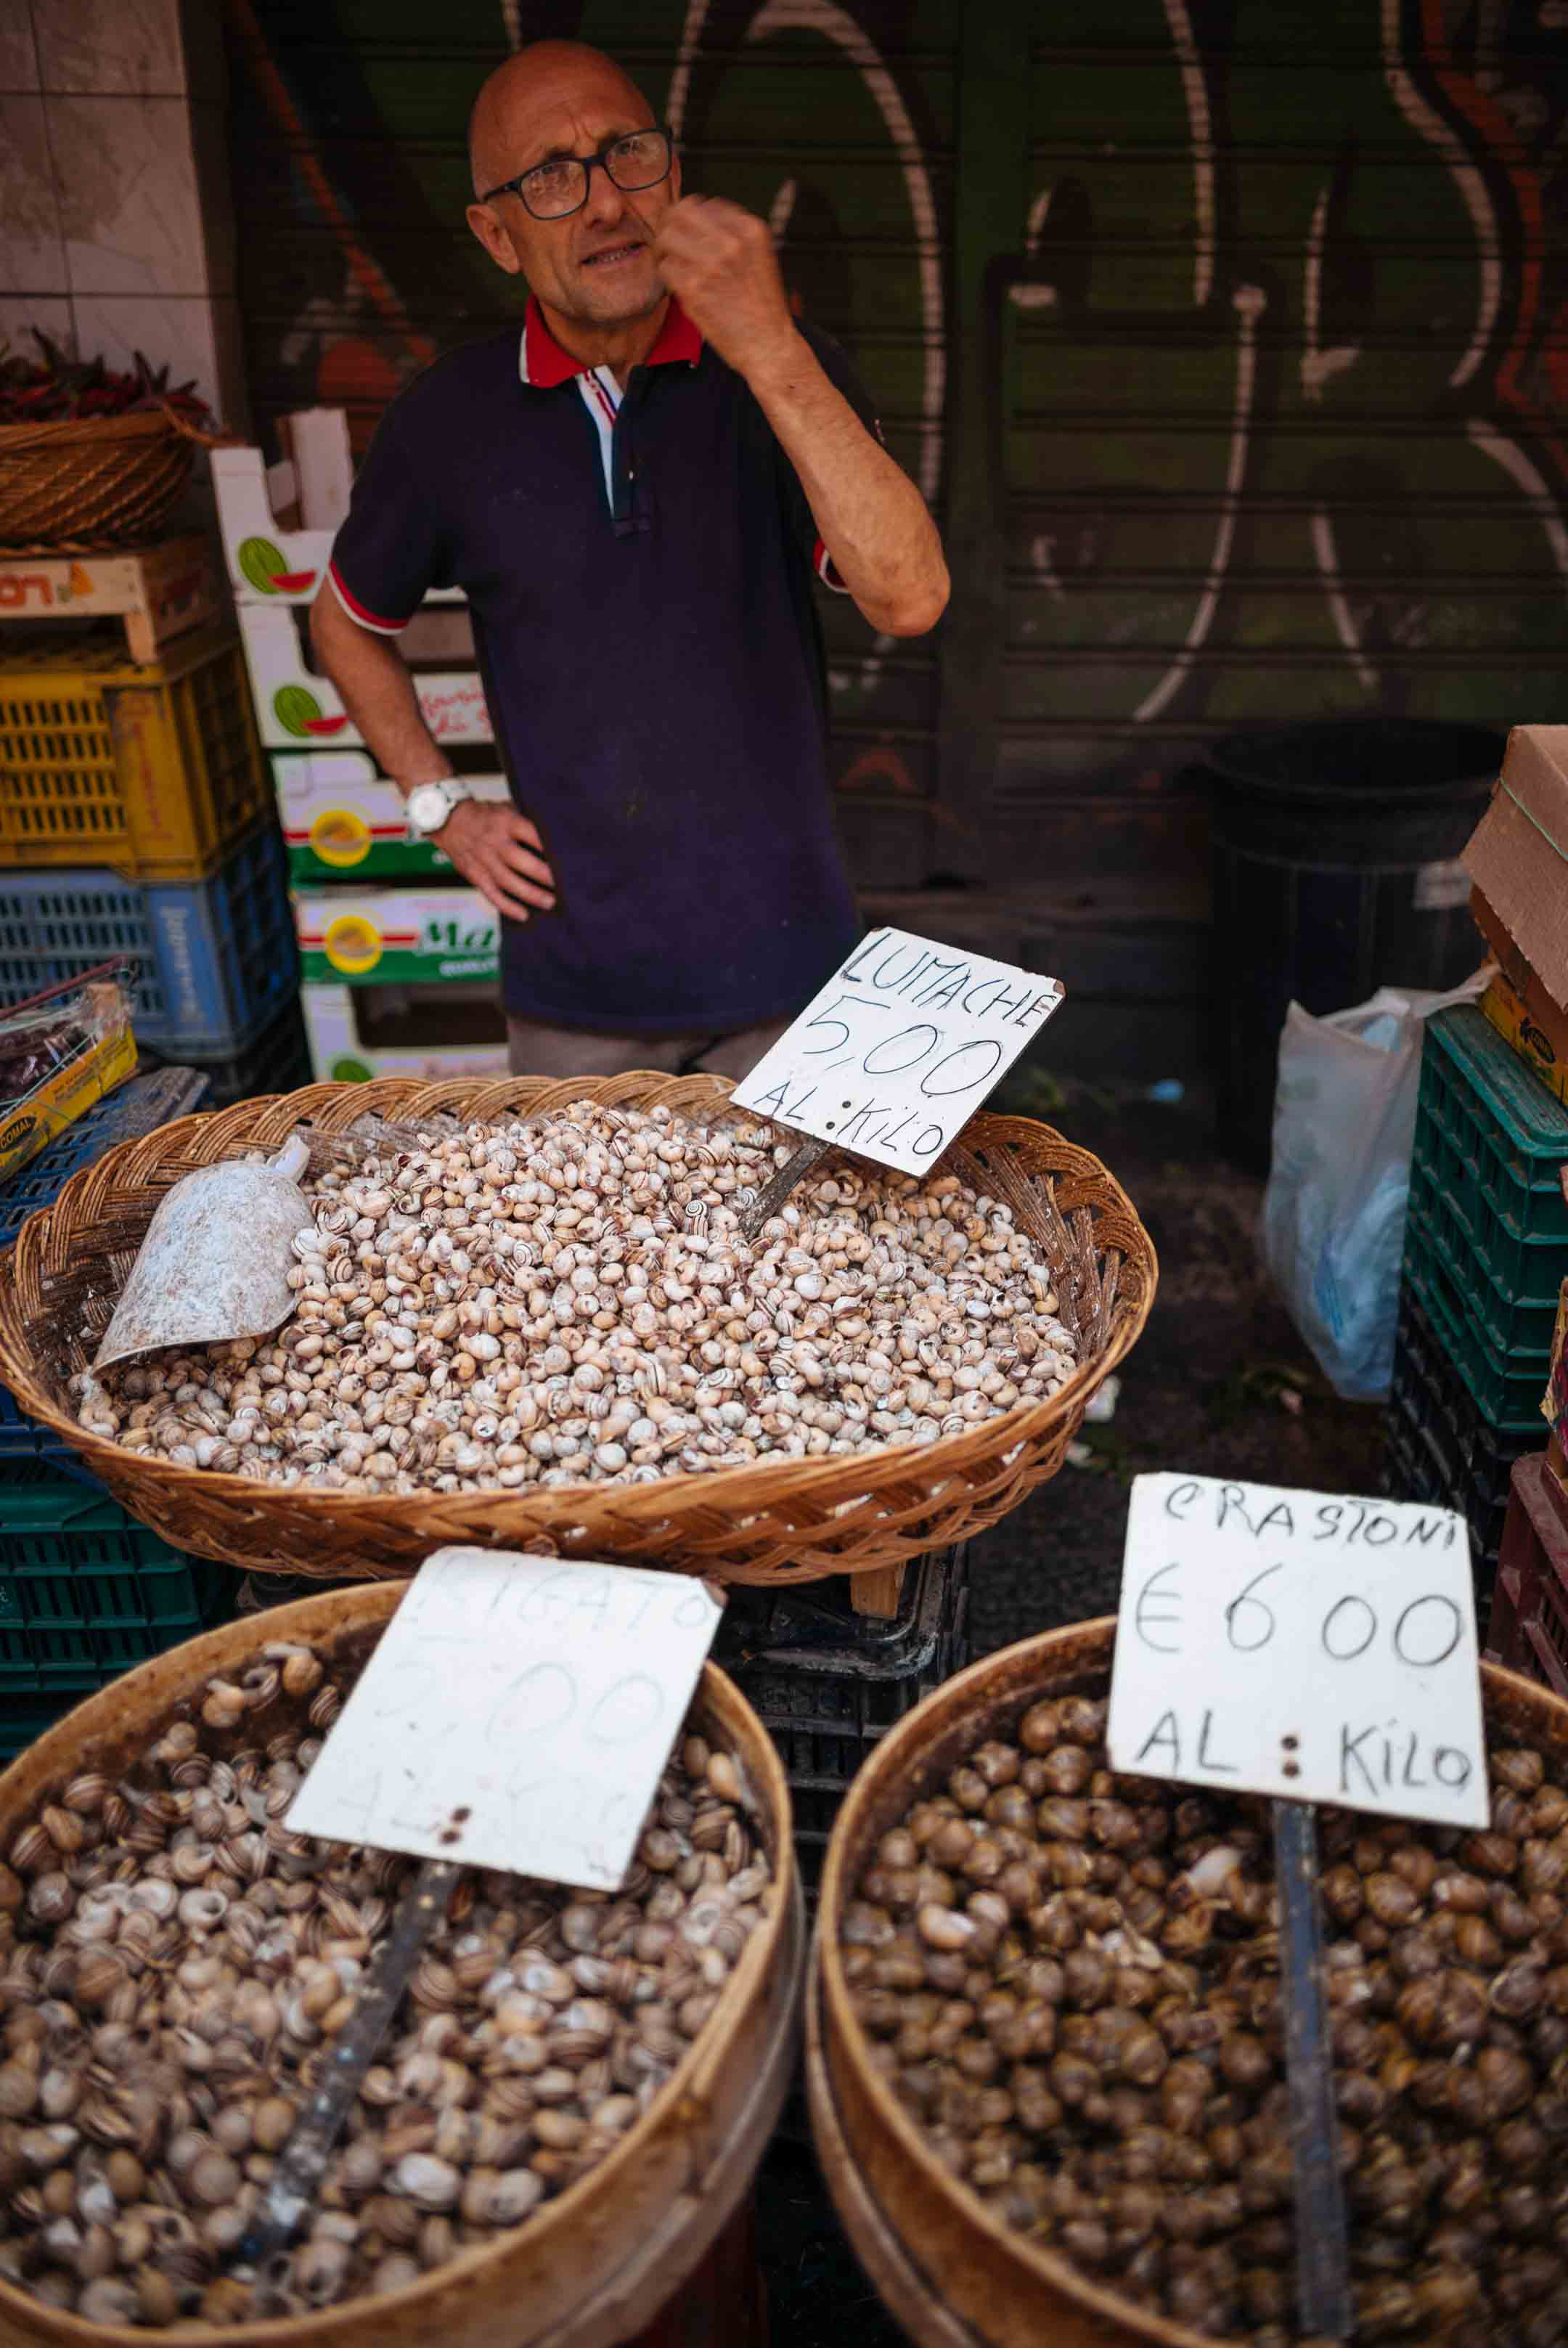 The Taste Edit visits the Catania fish market and spots a snail vendor in Sicily.